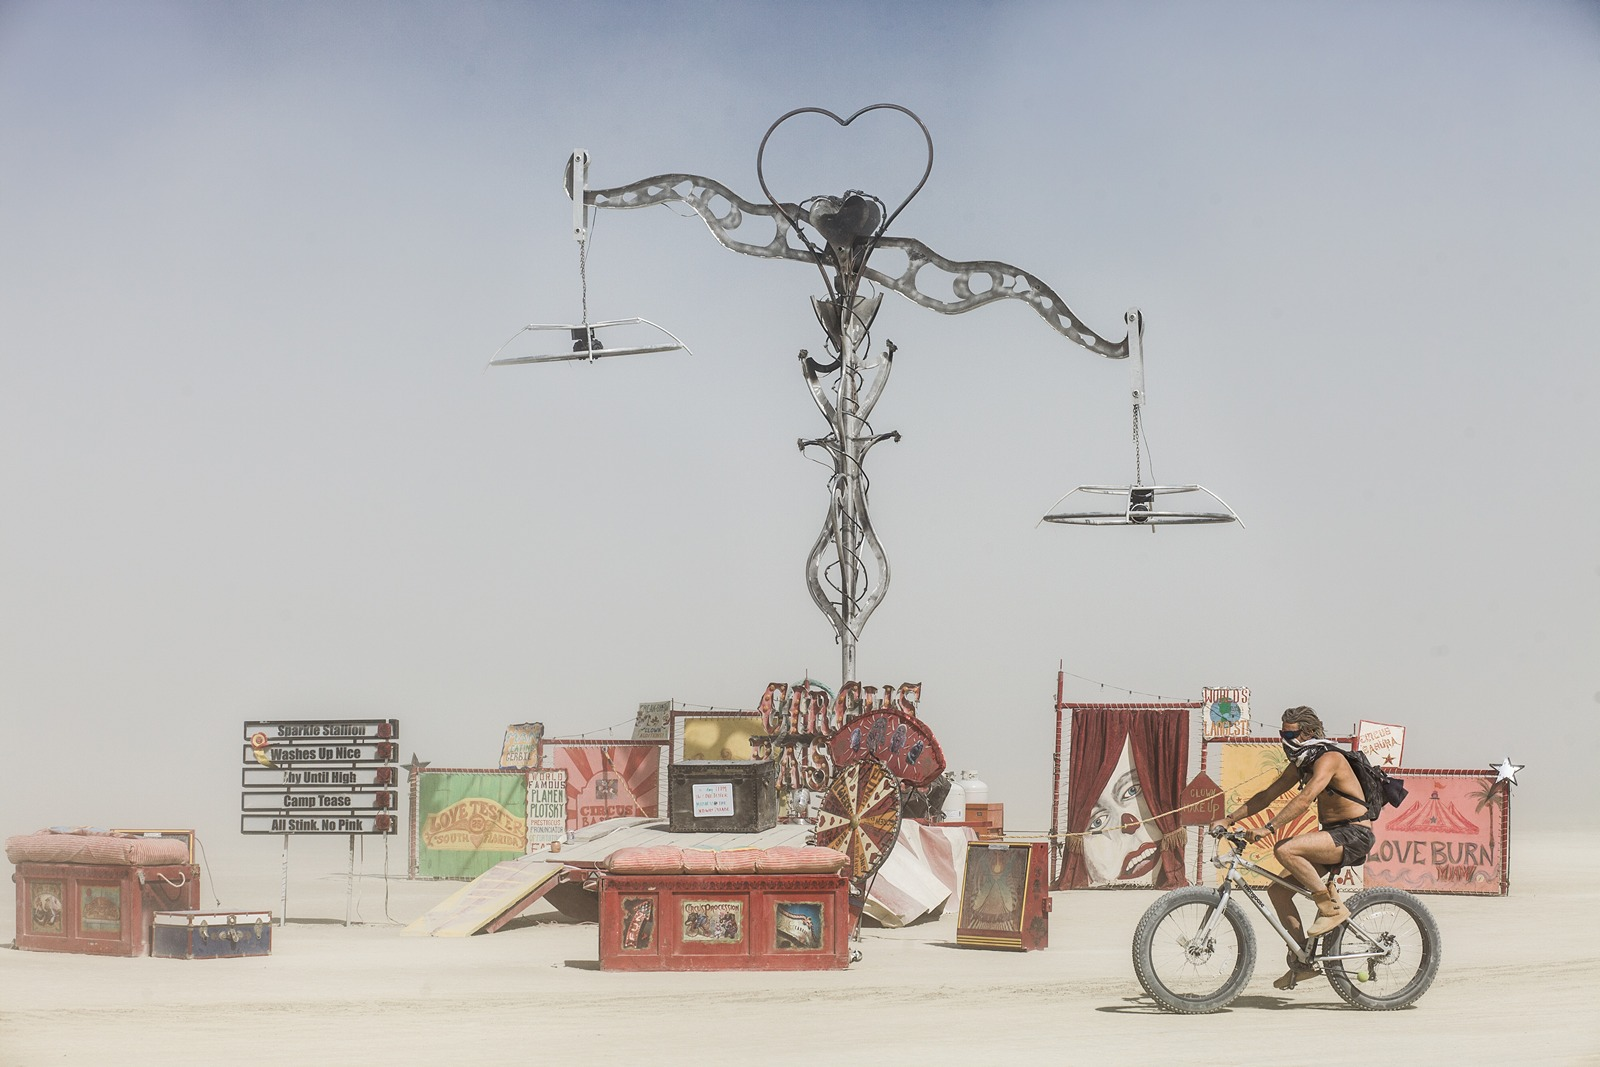 Burning Man - Don't ask what is it